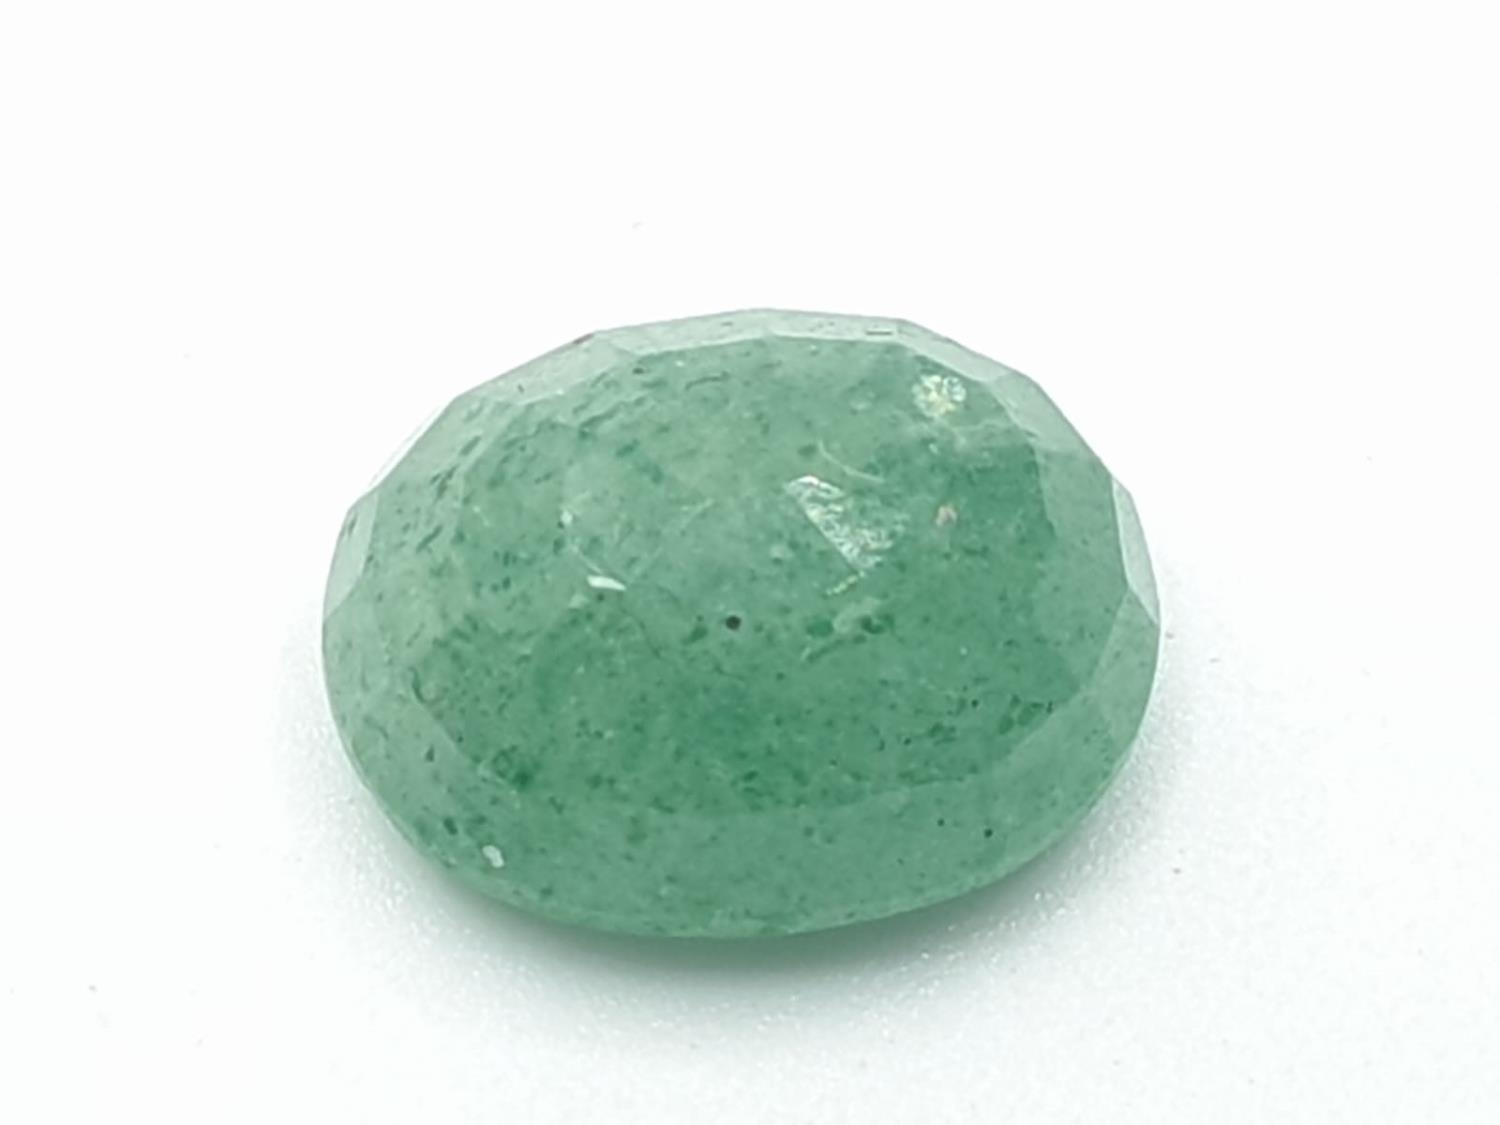 Set of 2 Certified Gemstones - Emerald and Blue sapphire - Image 4 of 7